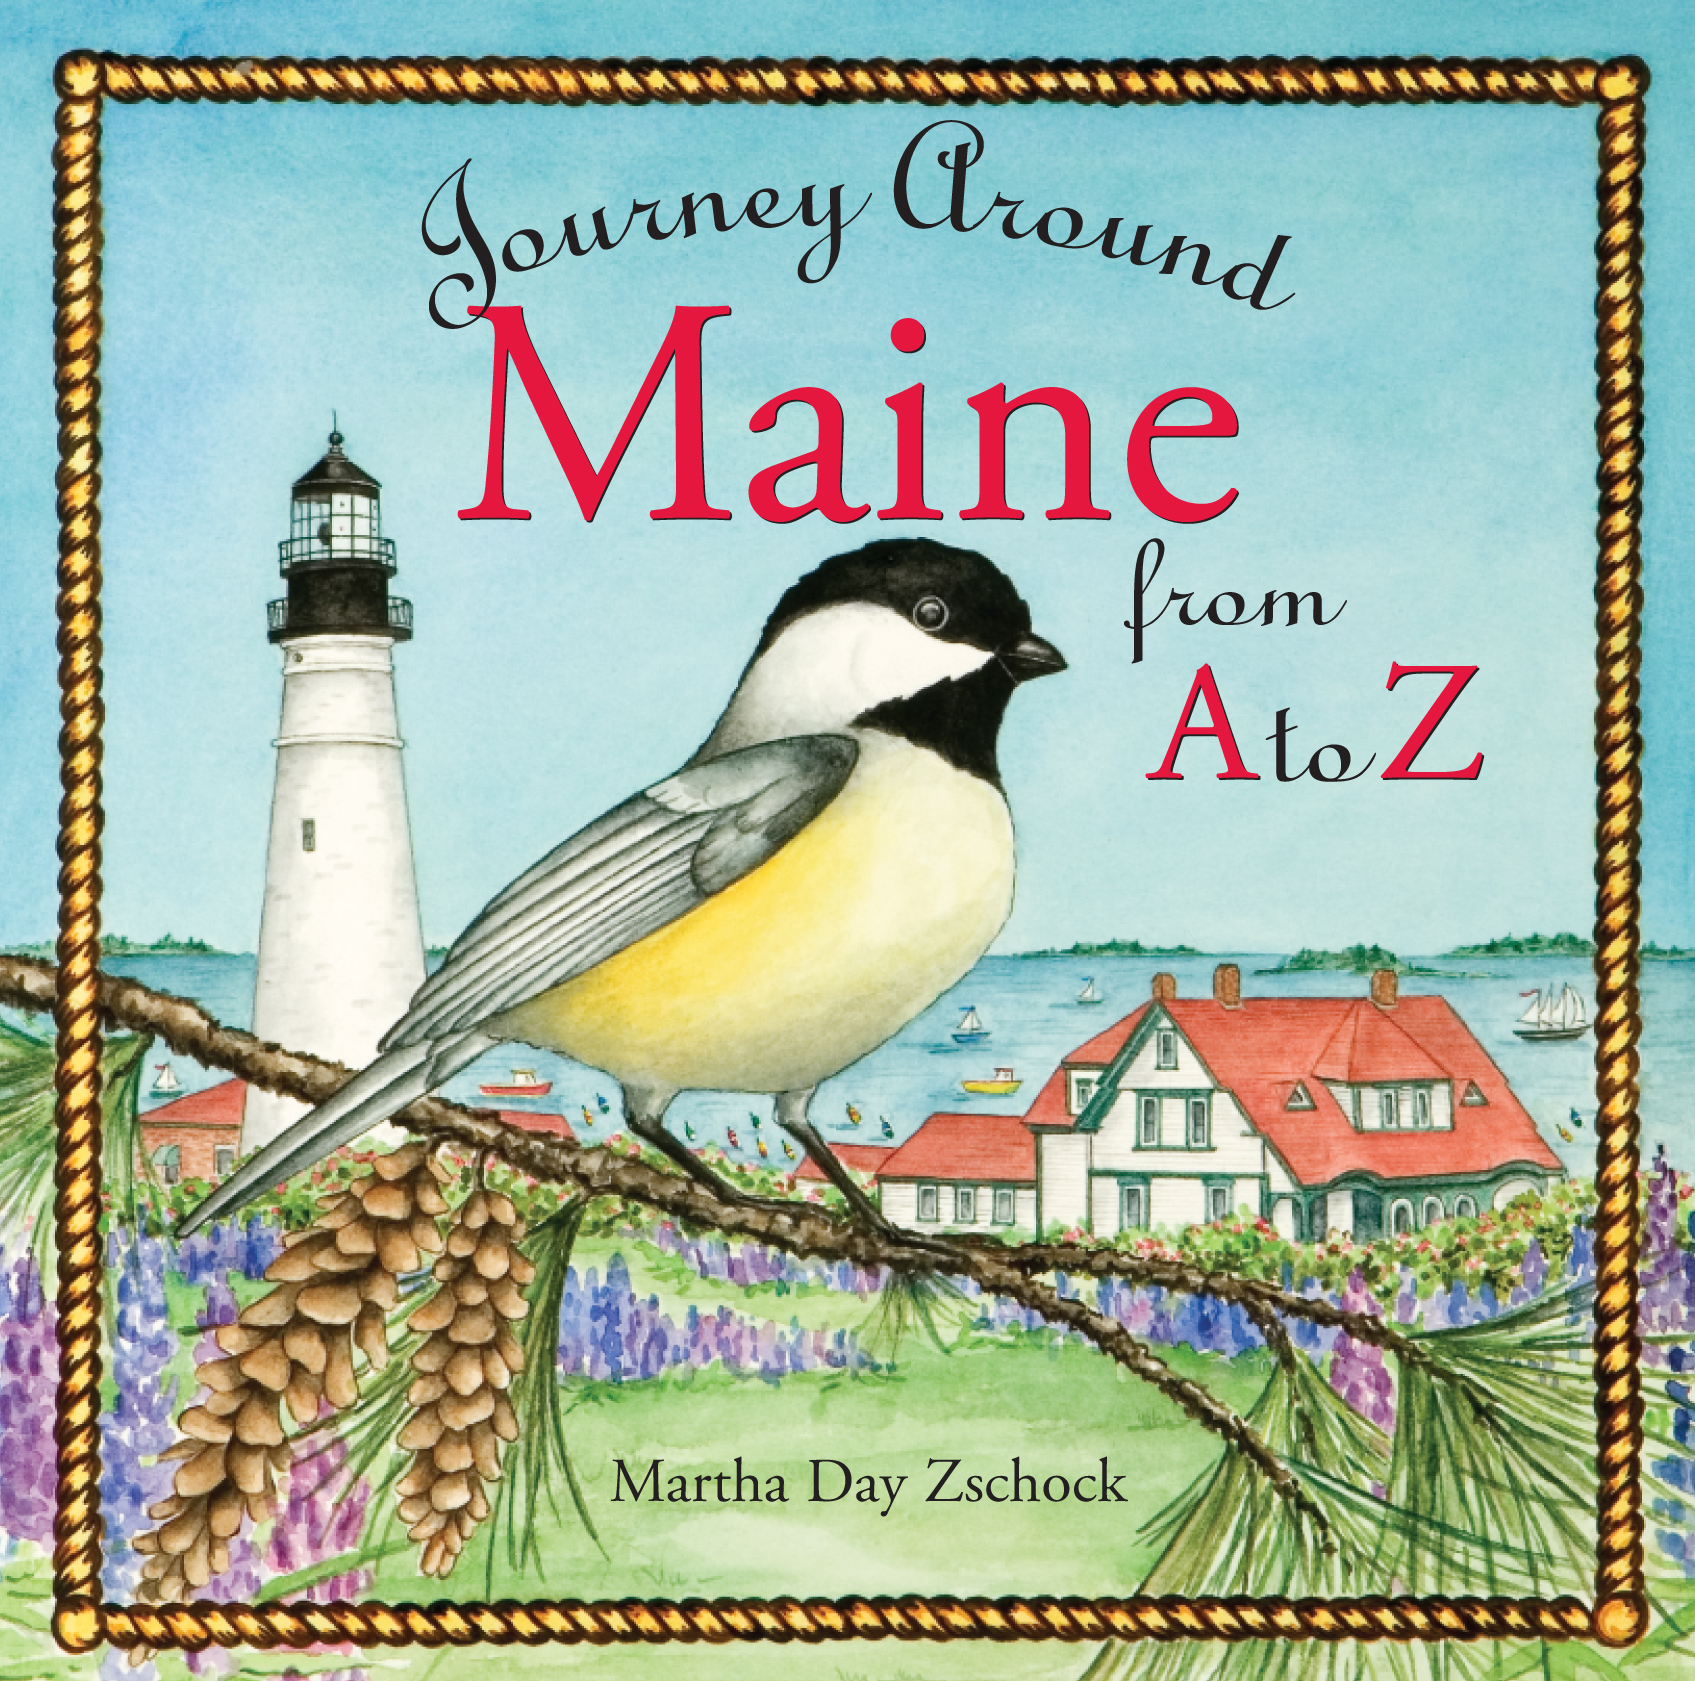 journey-around-maine-cover.png